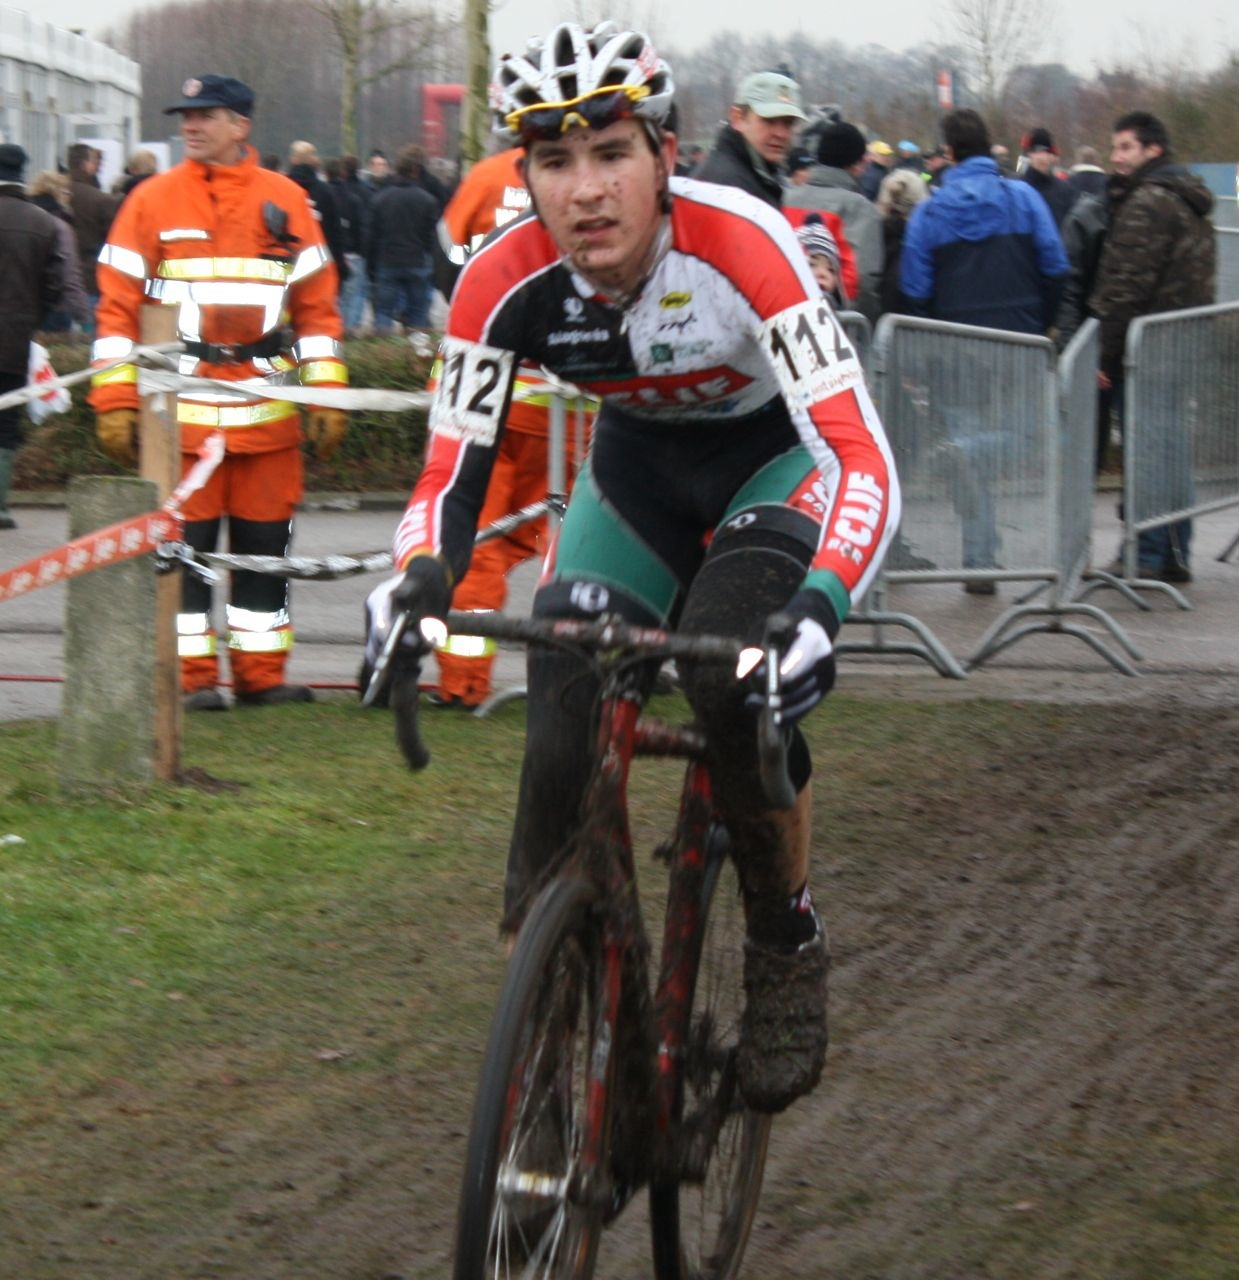 Yannick Eckmann on his Last Lap. ? Dan Seaton